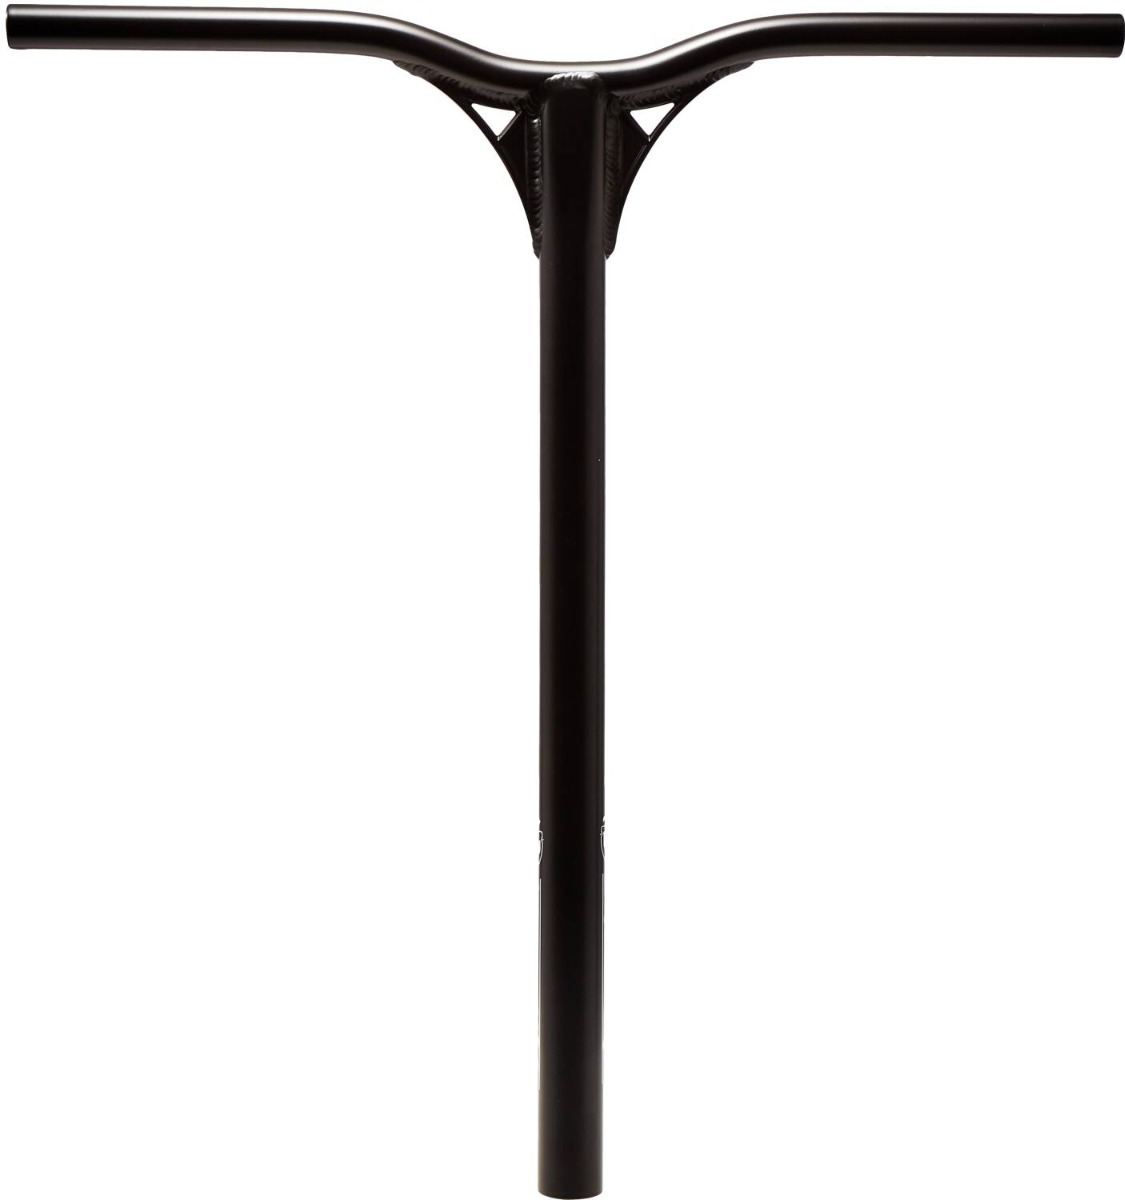 An image of Longway Metro Sector IHC Scooter Bar - Black - 600mm x 556mm